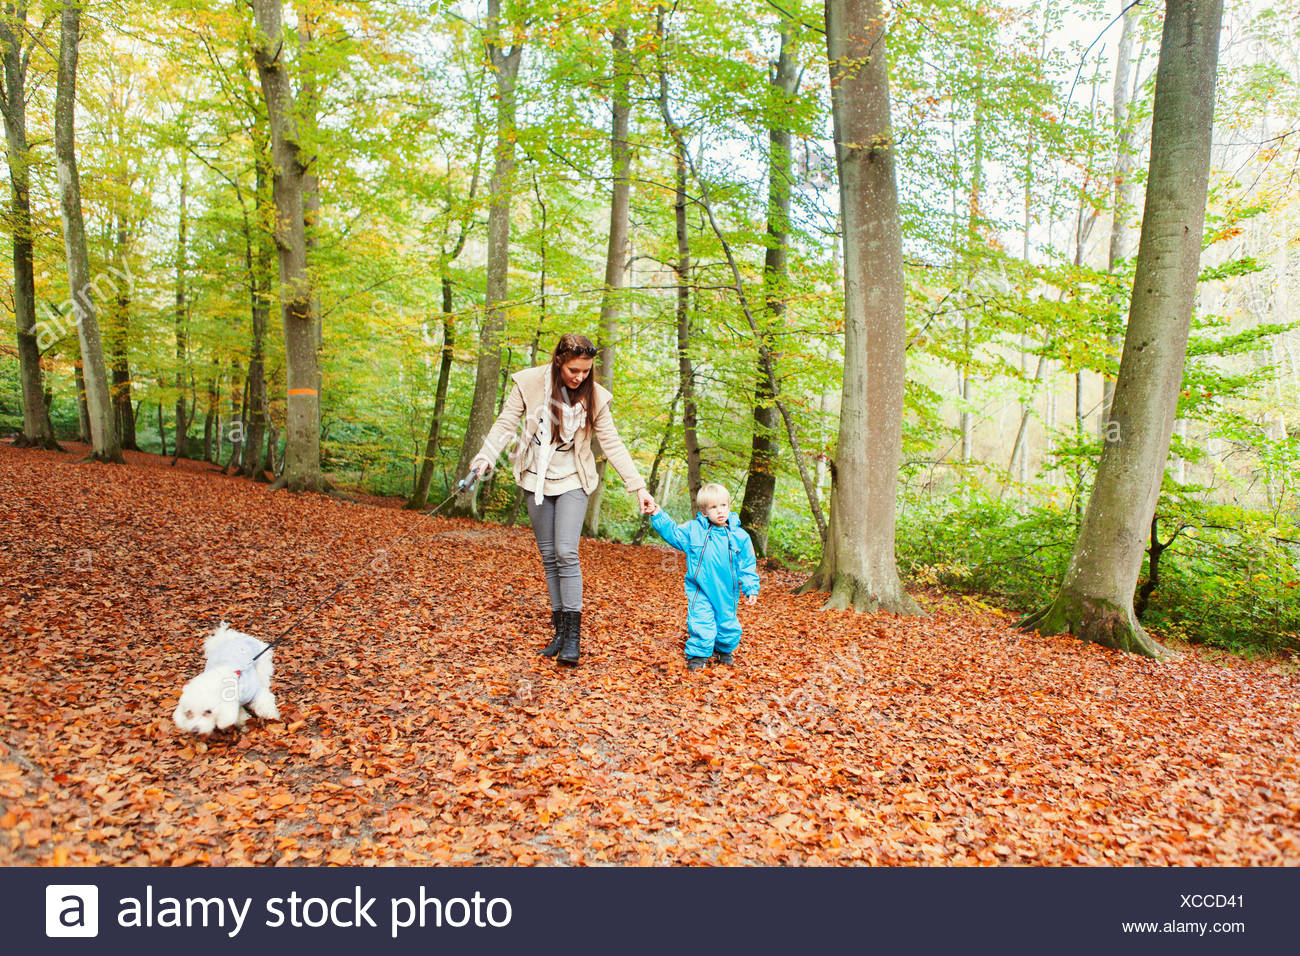 Mother and son walking with dog in forest - Stock Image